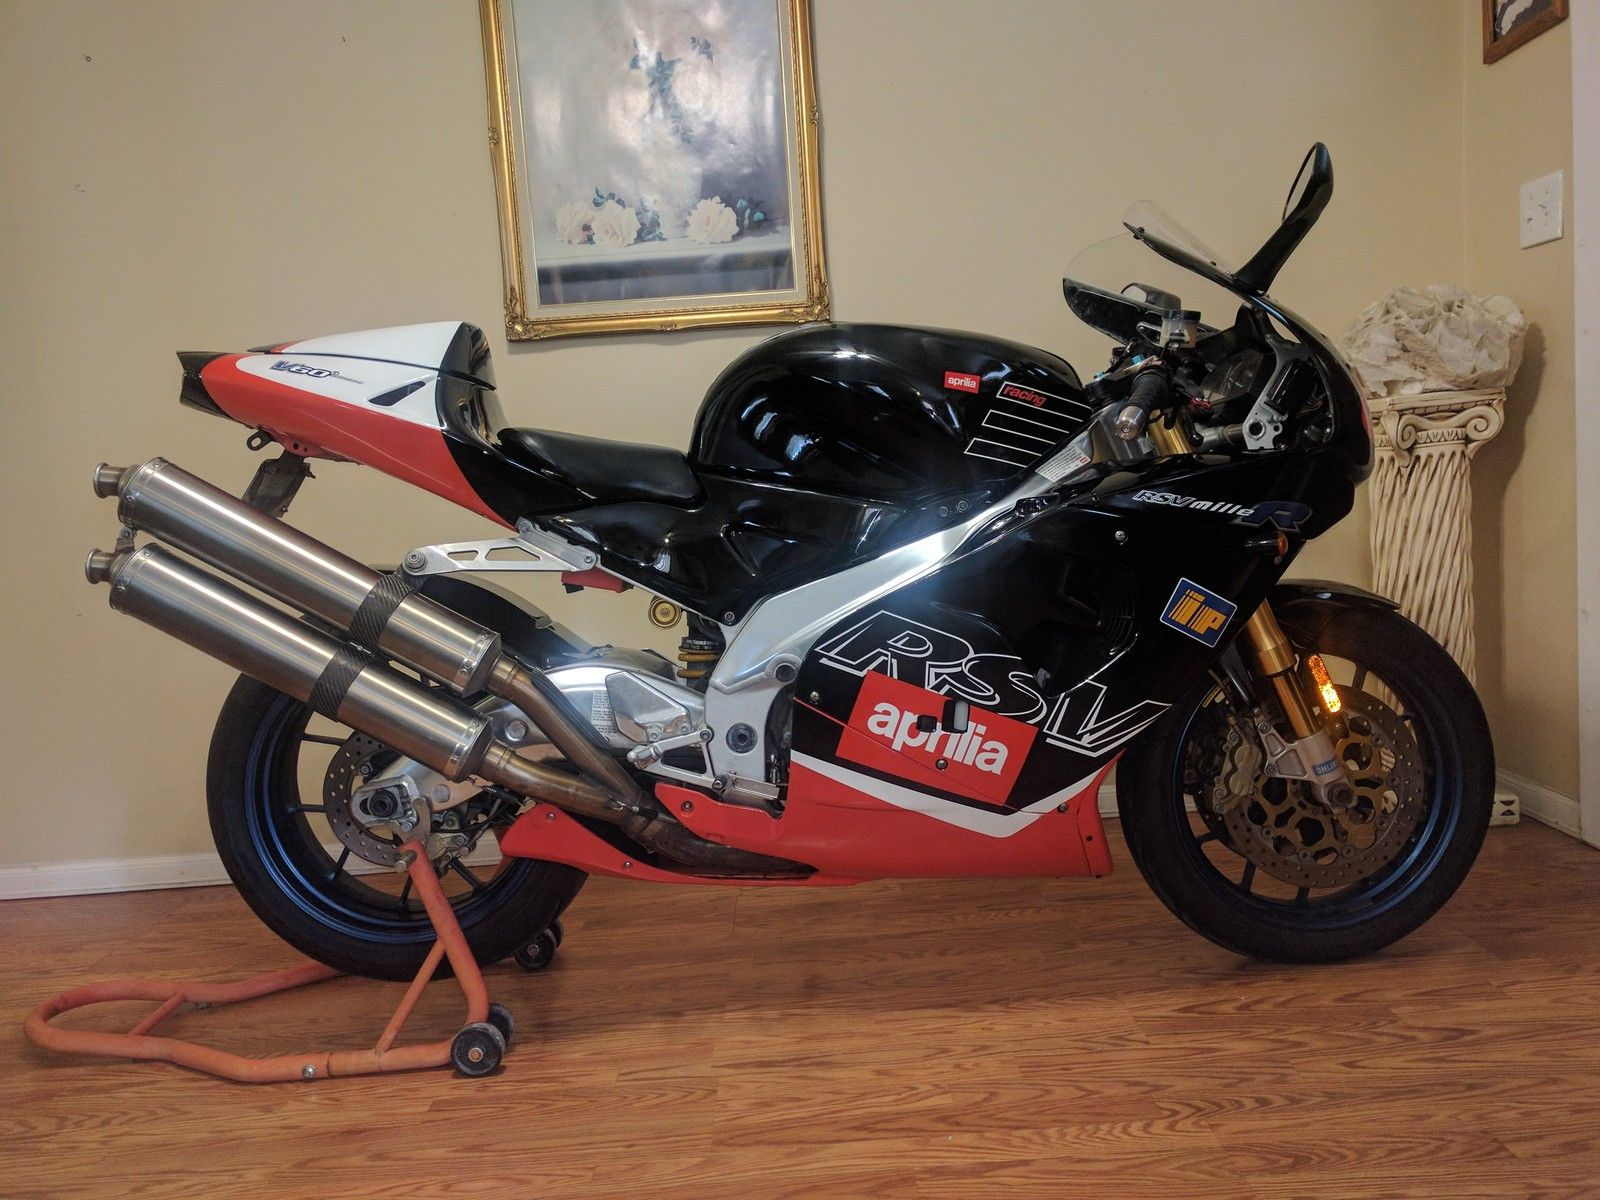 Practical Italian: 2000 Aprilia RSV Mille R for Sale - Rare SportBikes For Sale